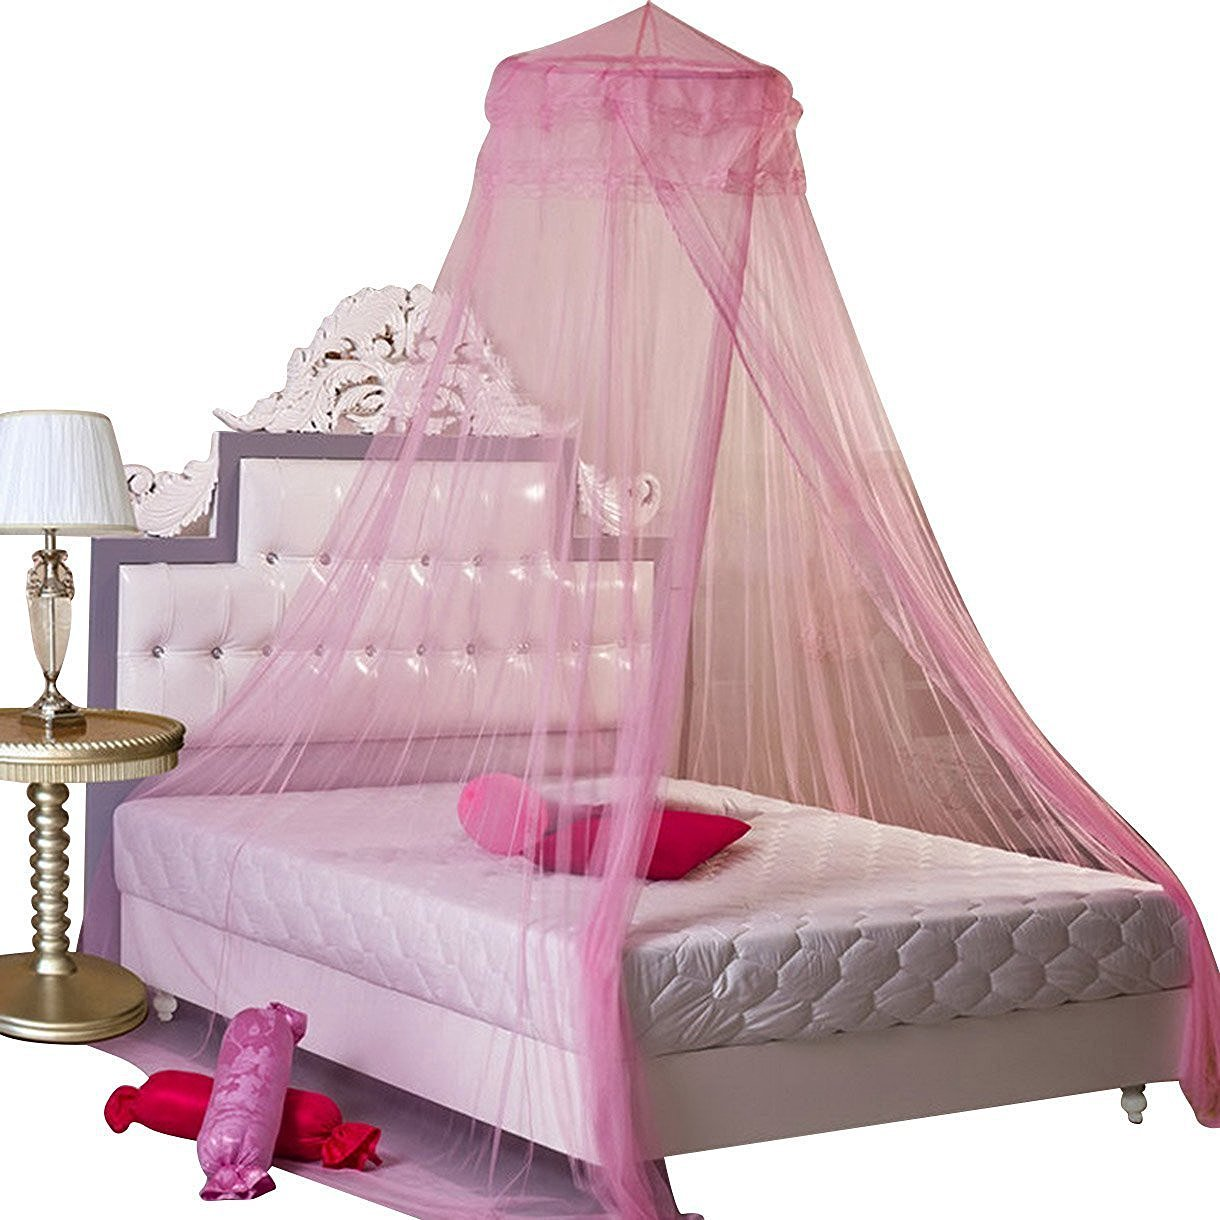 GYBest Round Lace Curtain Dome Bed Canopy Netting Princess Mosquito Net (Pink) SYNCHKG052138